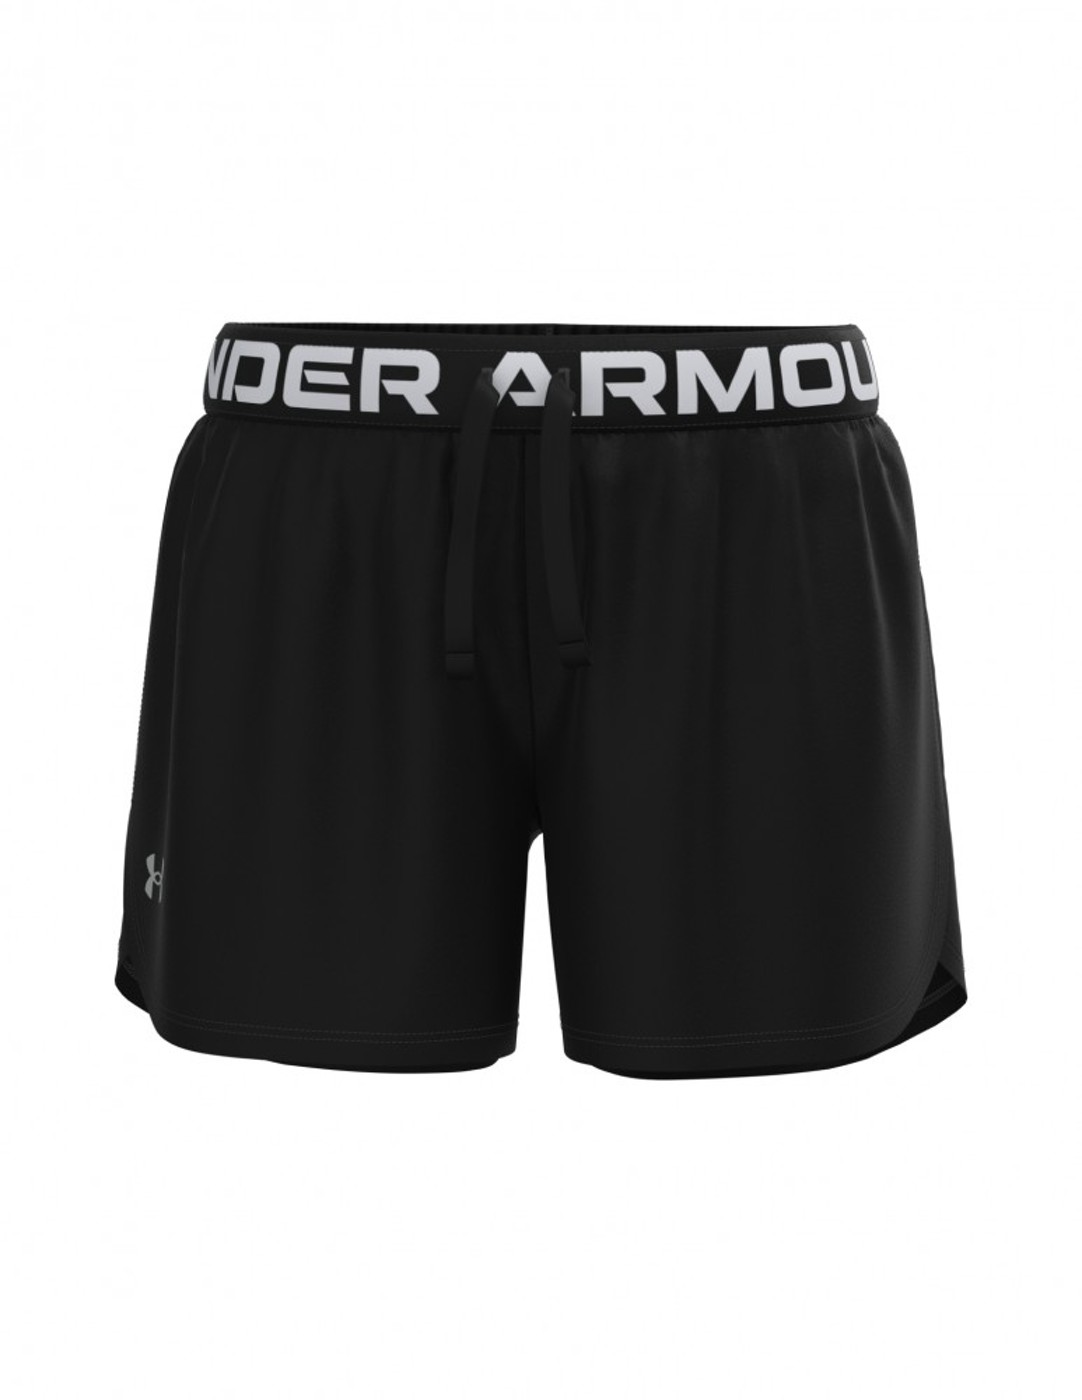 UNDER ARMOUR Play Up Solid Shorts-PNK,YXS - Kinder